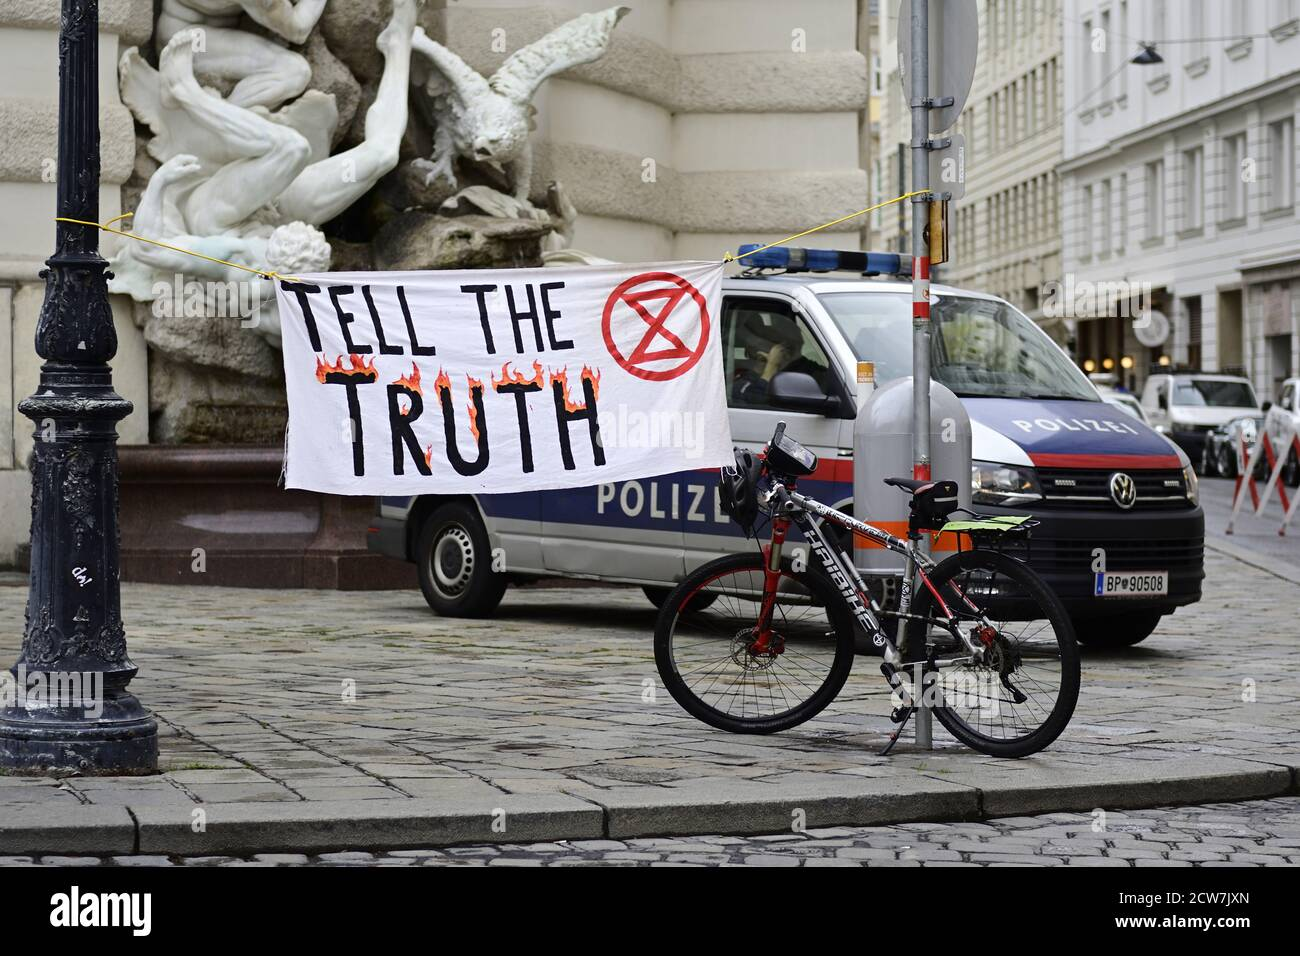 Vienna, Austria. 28th Sept 2020.  Extinction Rebellion Protest at Michaelerplatz in Vienna. At an event that was not registered according to the police, the activists occupied the square with tents and banners, among other things. Credit: Franz Perc/Alamy Live News Stock Photo